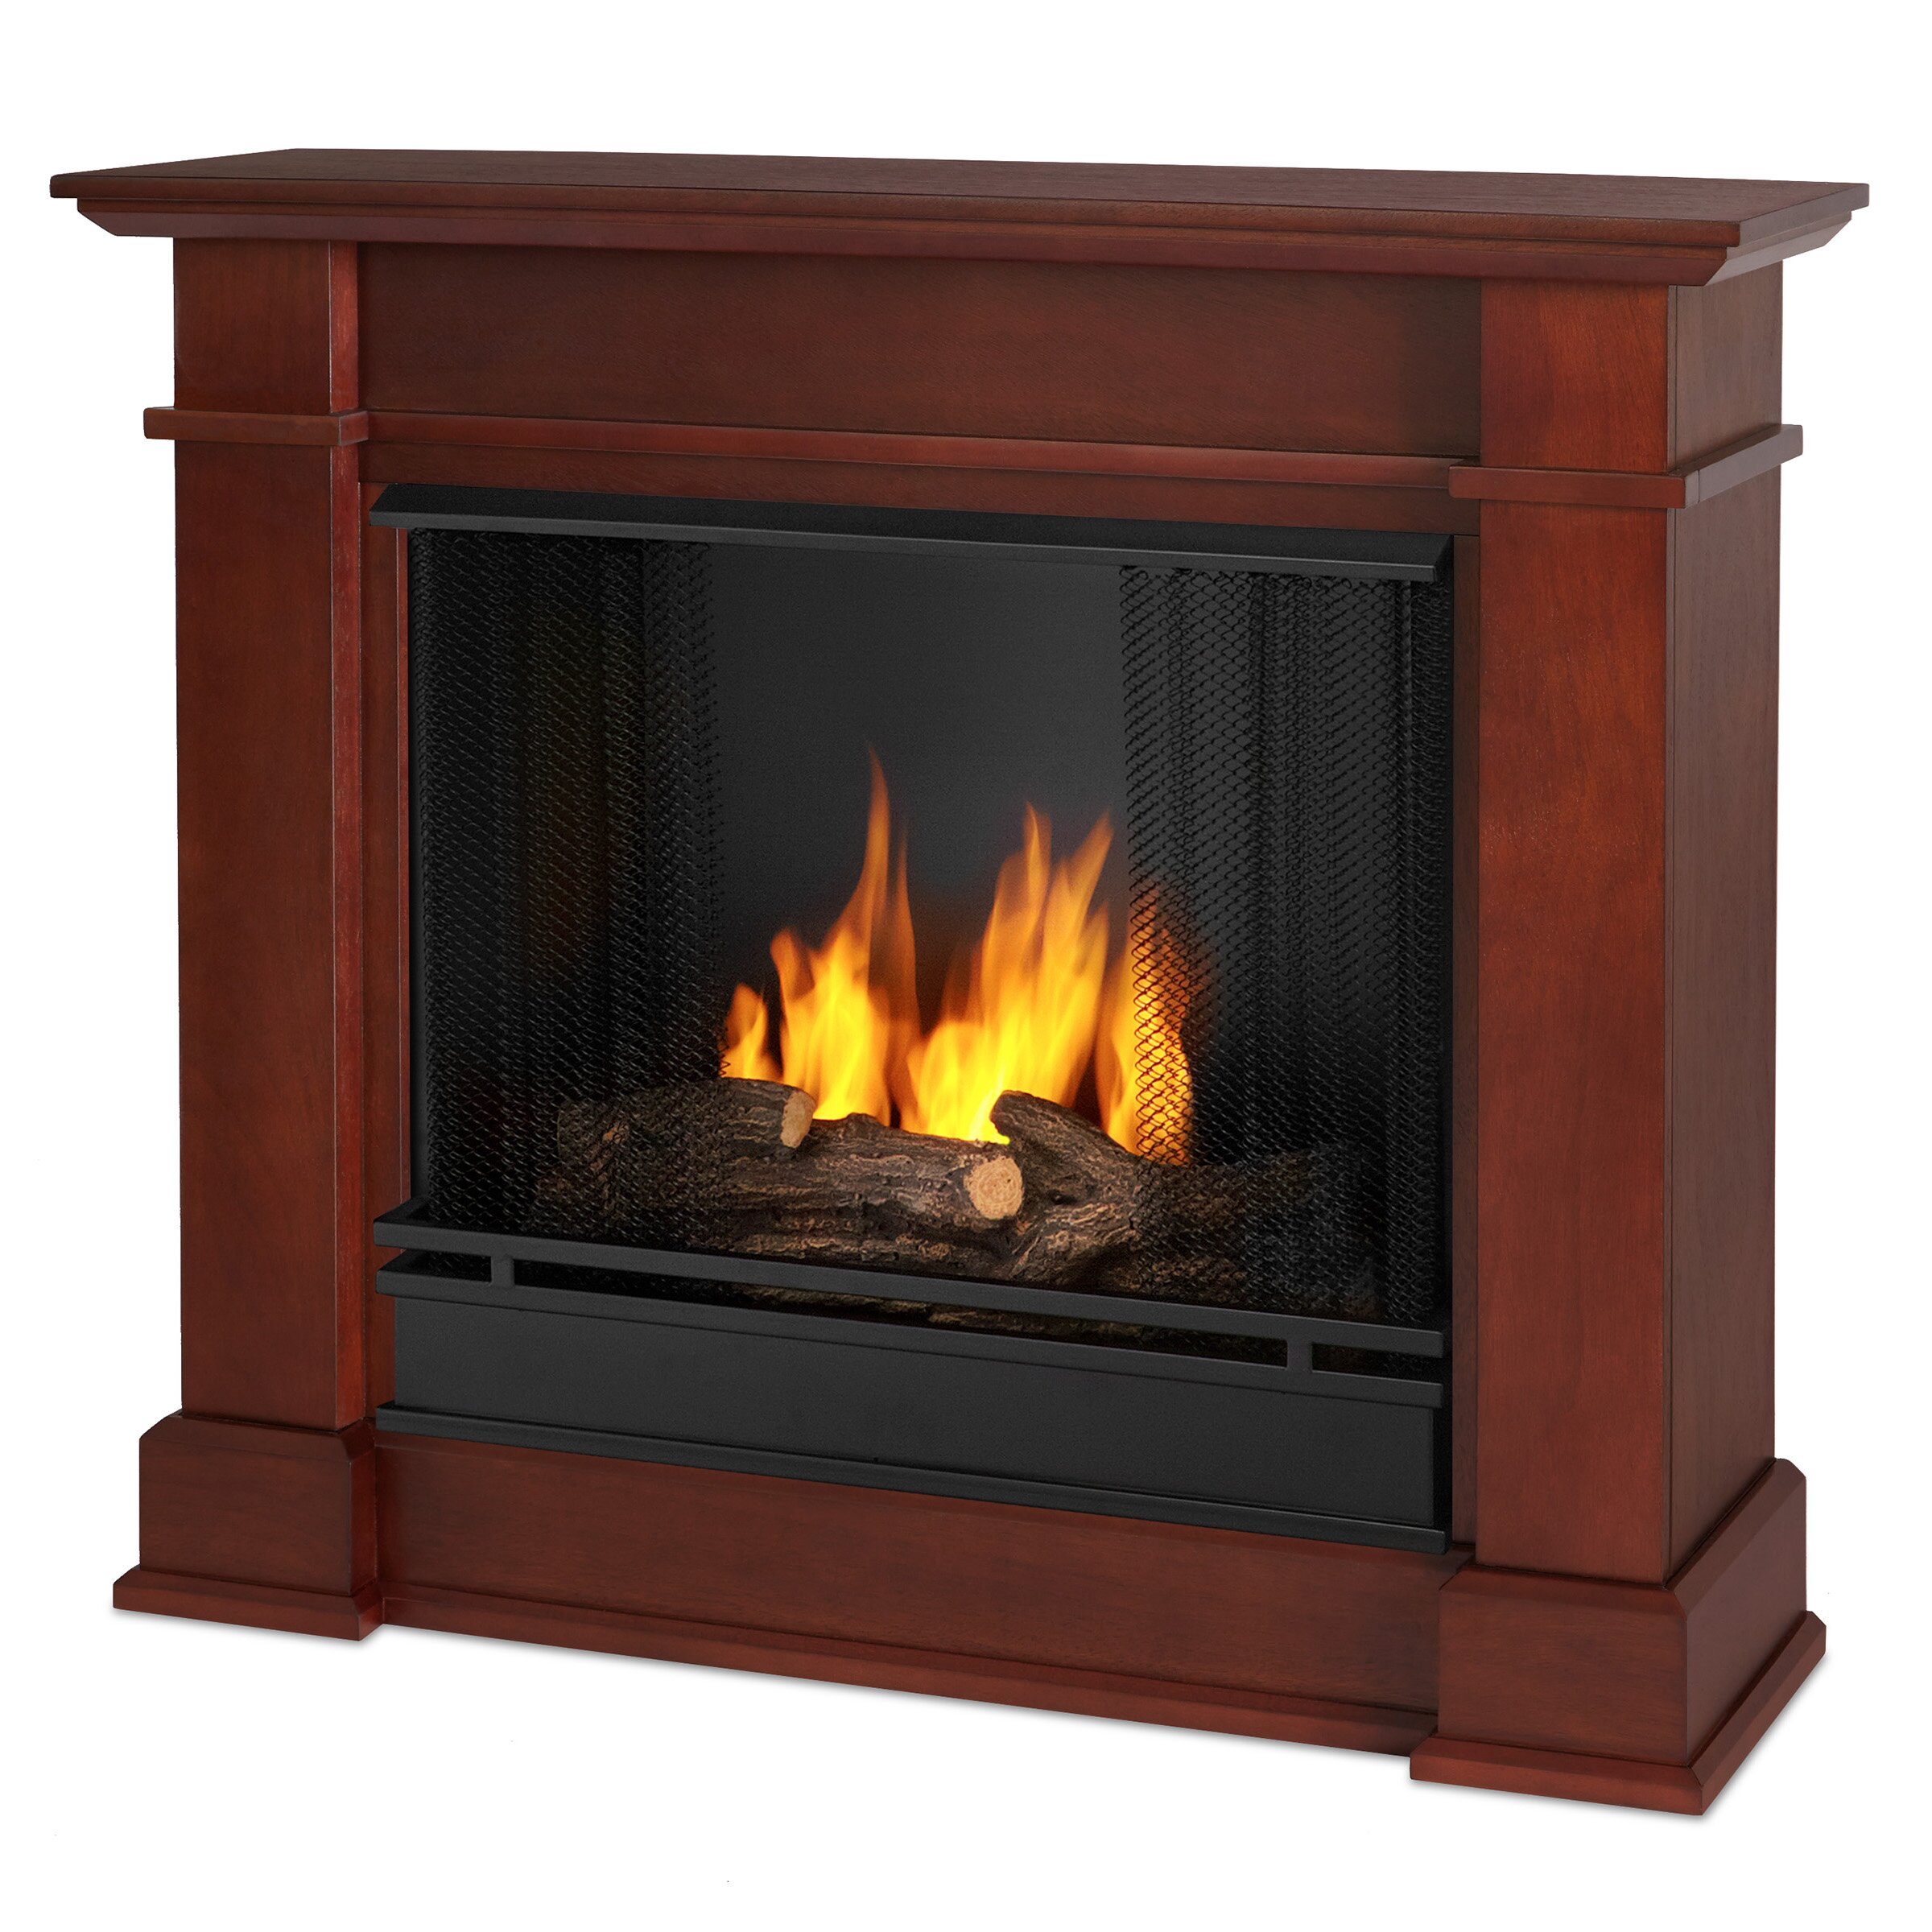 Real Flame Devin Petite Gel Fuel Fireplace Reviews Wayfair